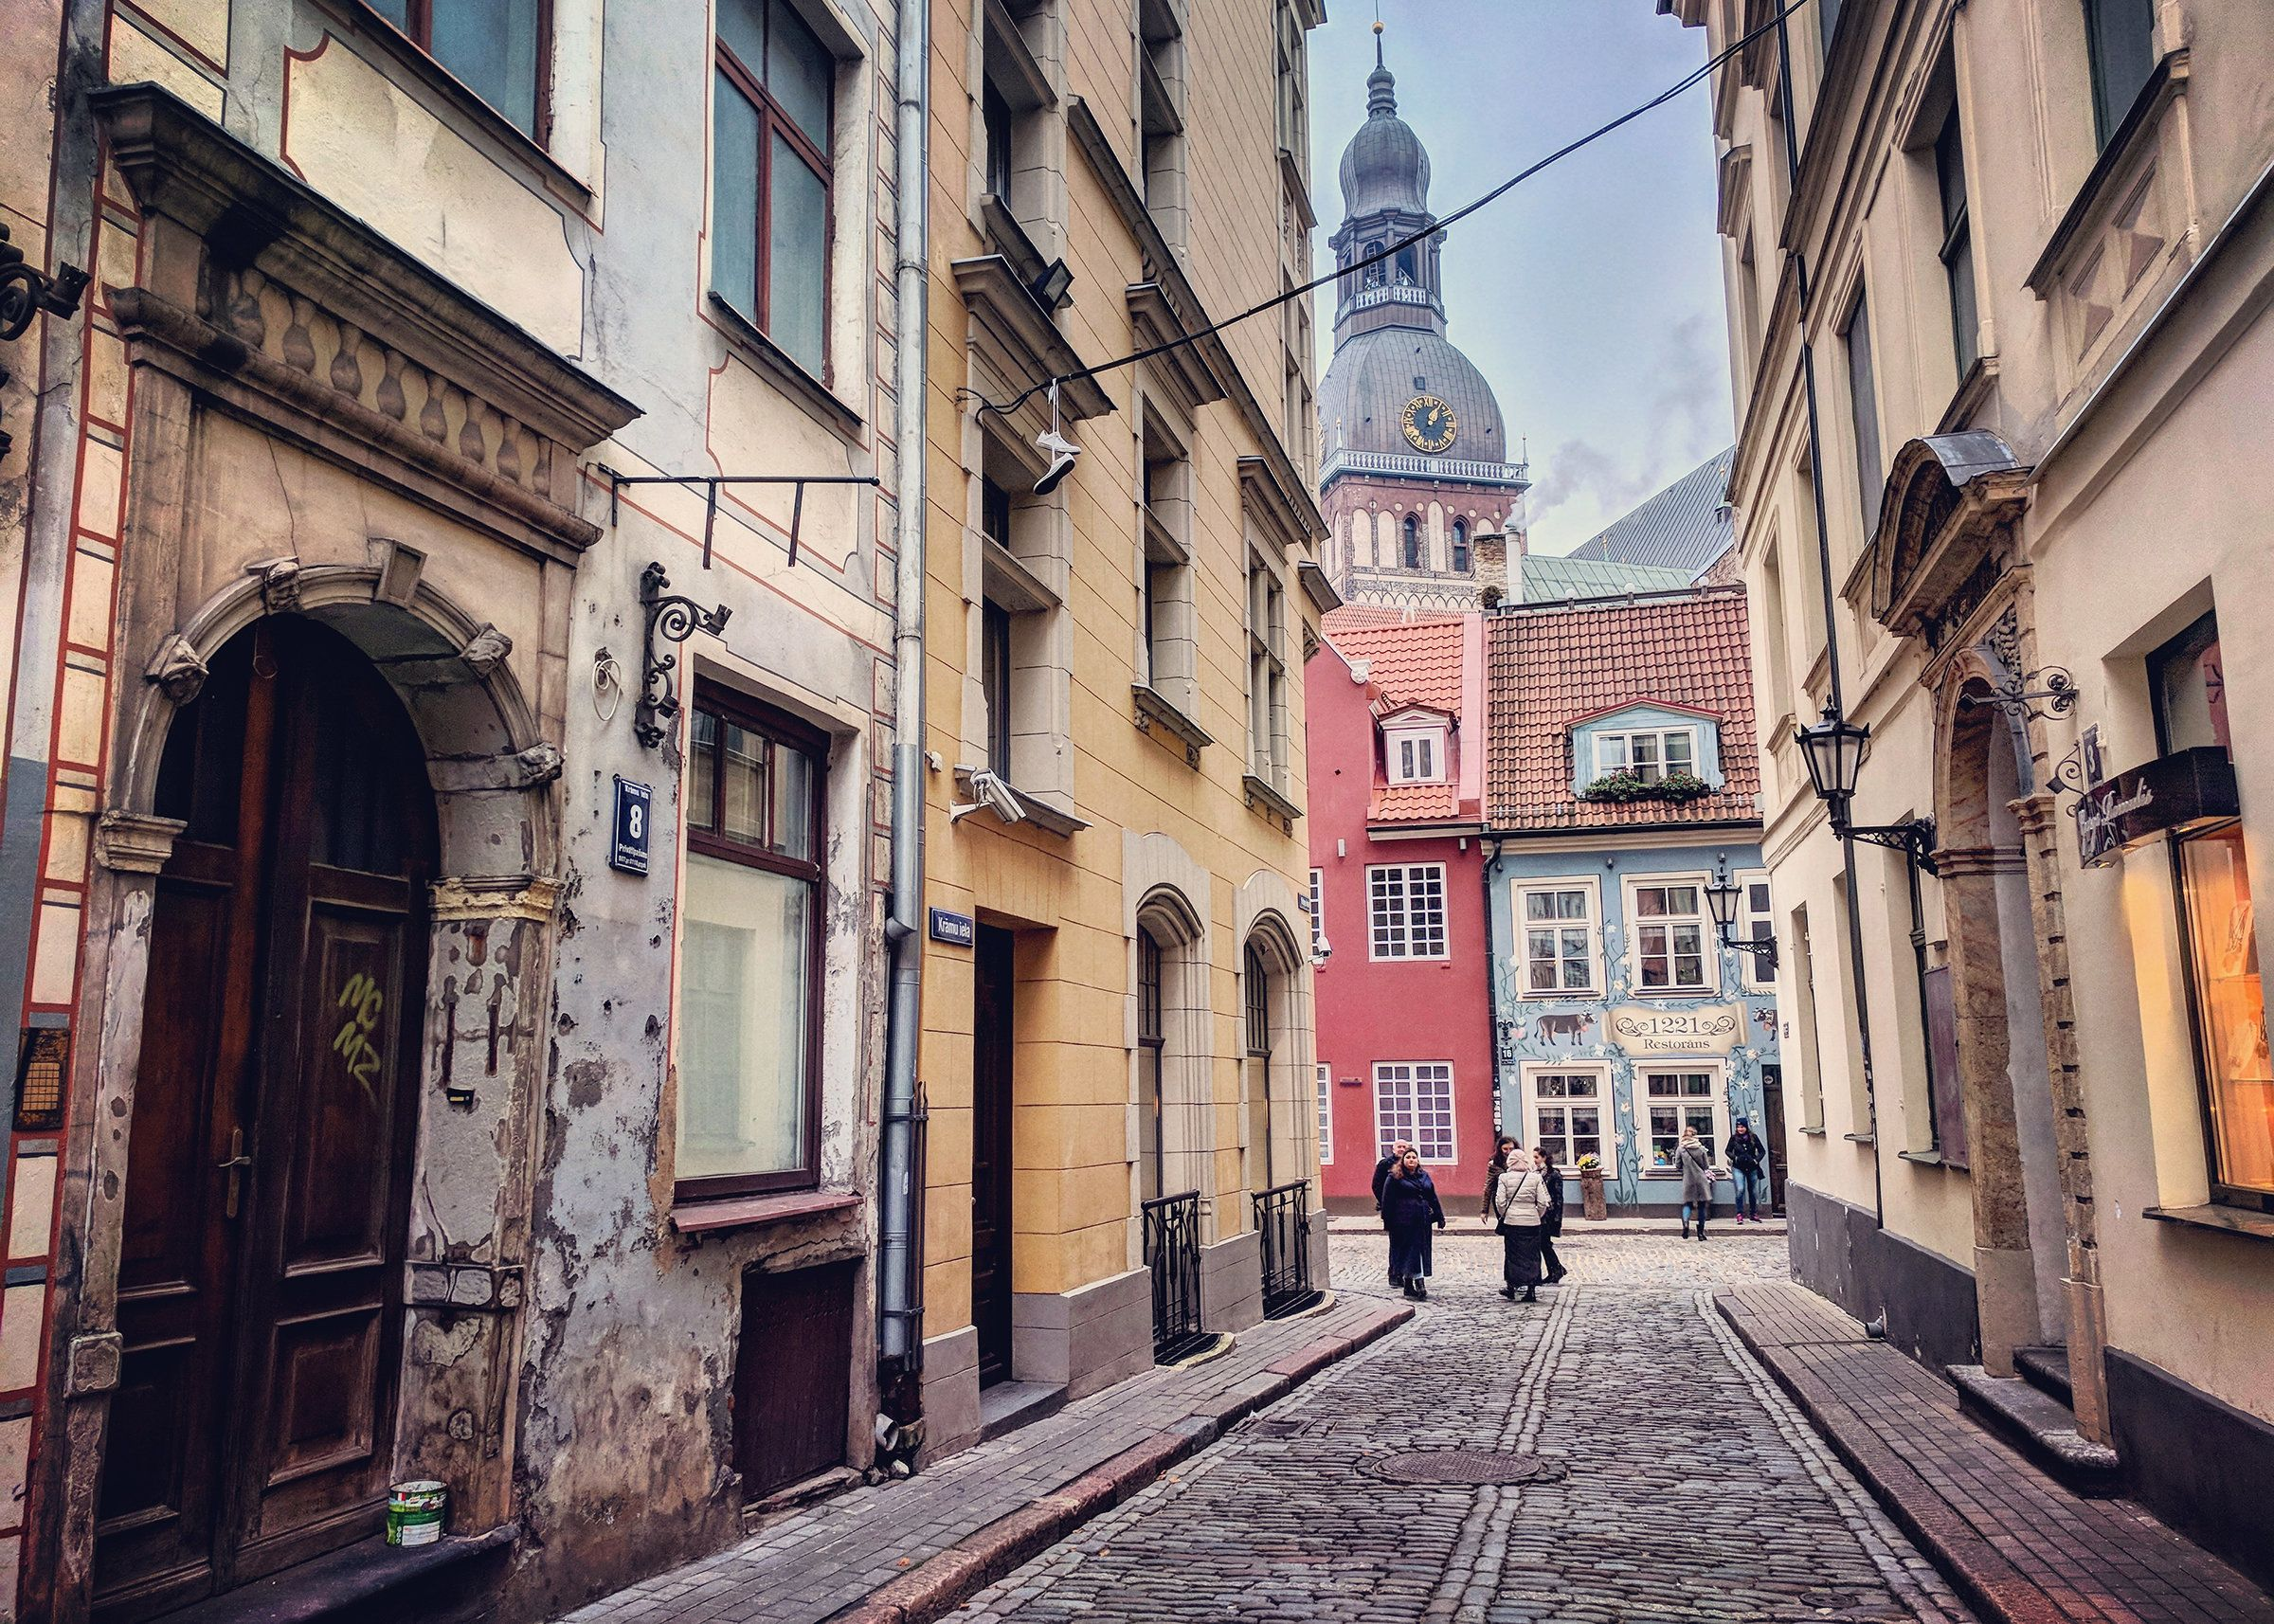 """<a href=""""https://www.lonelyplanet.com/lithuania/vilnius/travel-tips-and-articles/reasons-to-visit-vilnius-8-things-to-do-in-l"""